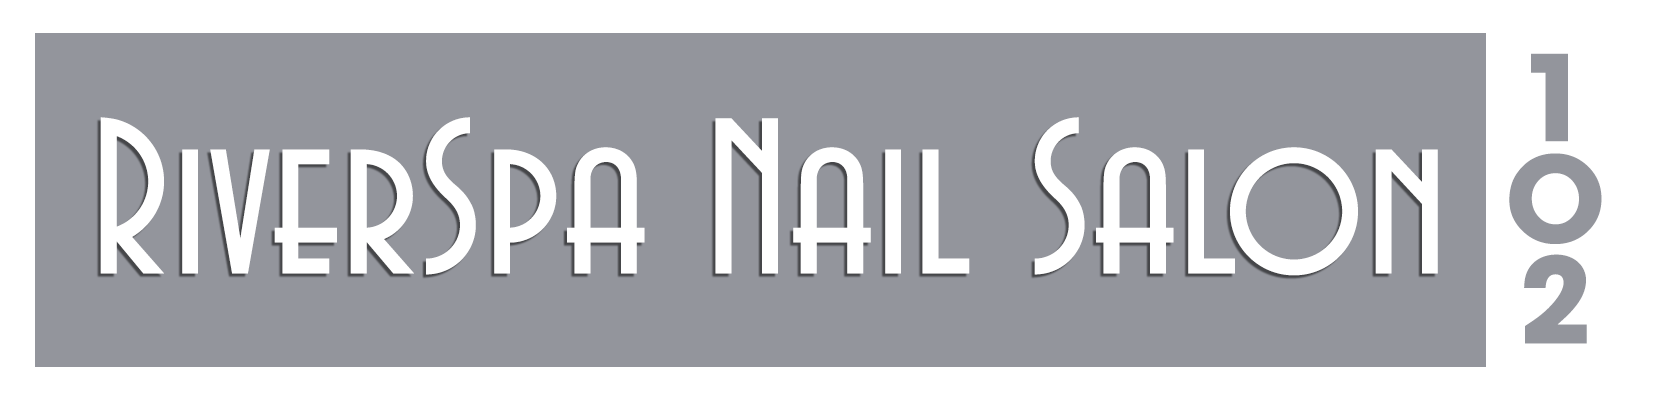 River Spa Nail Salon